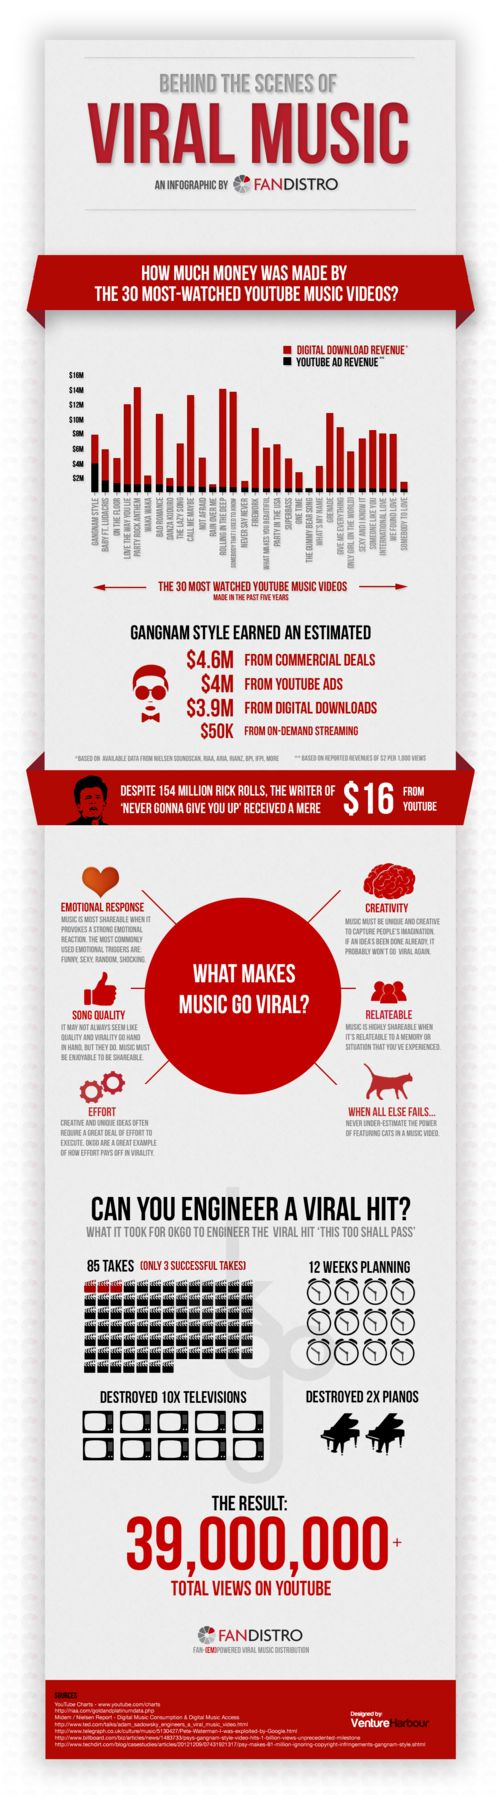 Why Do Certain Songs Go Viral? Find Out Here #Infographic